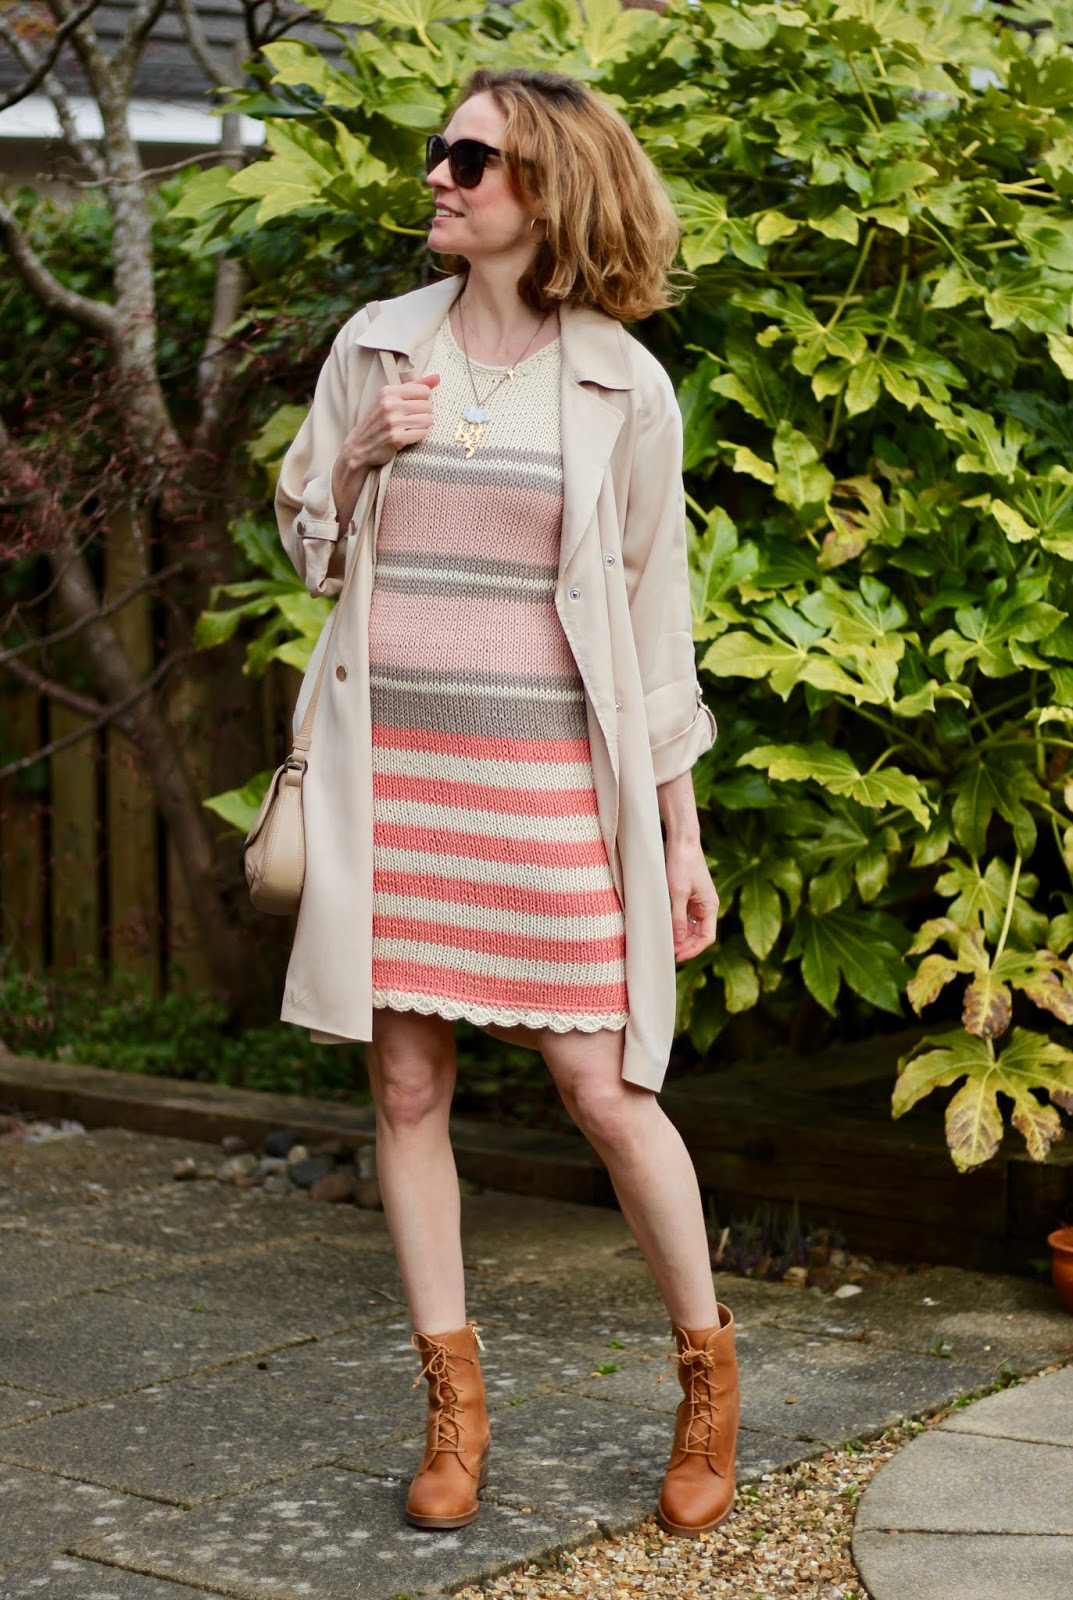 Handmade knitted dress | Beige toned spring outfit | Fake Fabulous